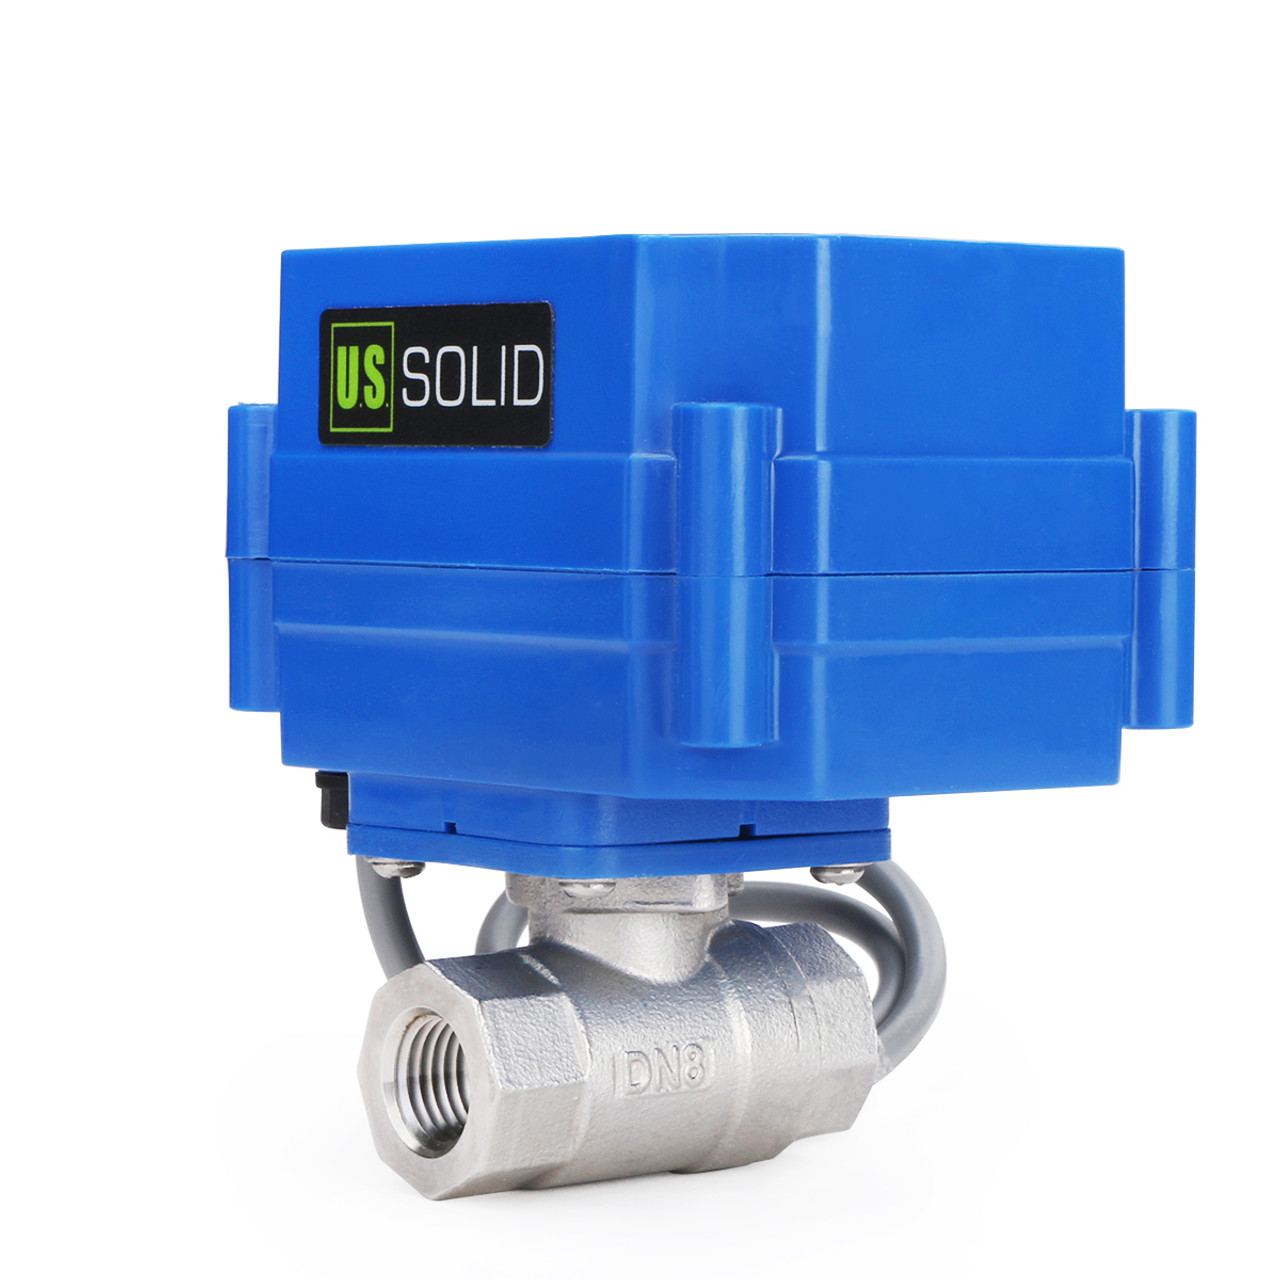 "USSOLID Motorized Ball Valve- 1/4"" Stainless Steel Electrical Ball Valve with Full Port, 9-24 V DC, 5 Wire Setup"